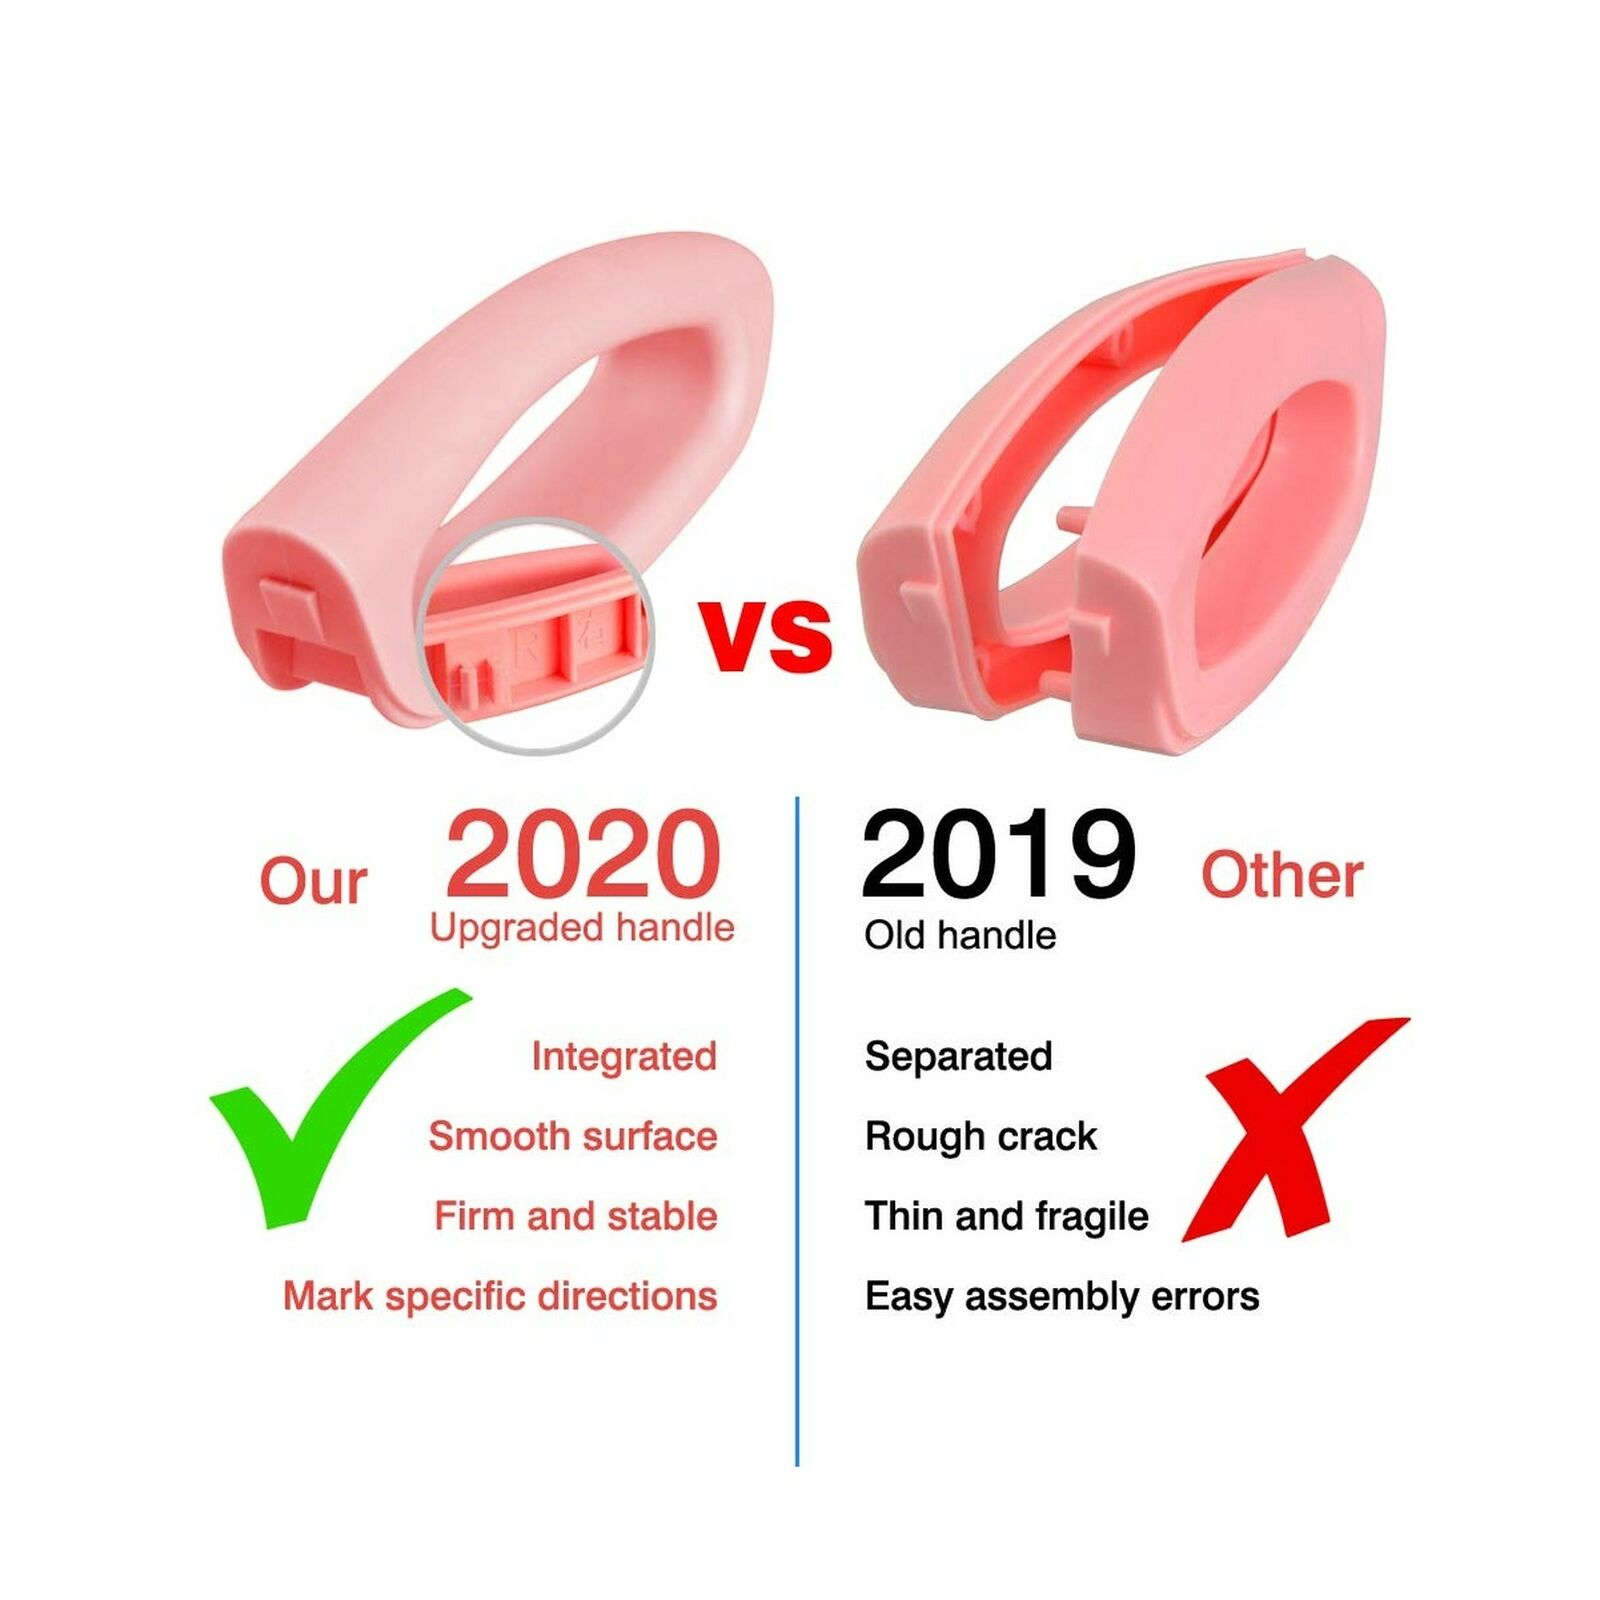 Pink 711TEK Potty Training Seat Toddler Toilet Seat with Step Stool Ladder,Potty Training Toilet for Kids Boys Girls Toddlers-Comfortable Safe Potty Seat Potty Chair with Anti-Slip Pads Ladder